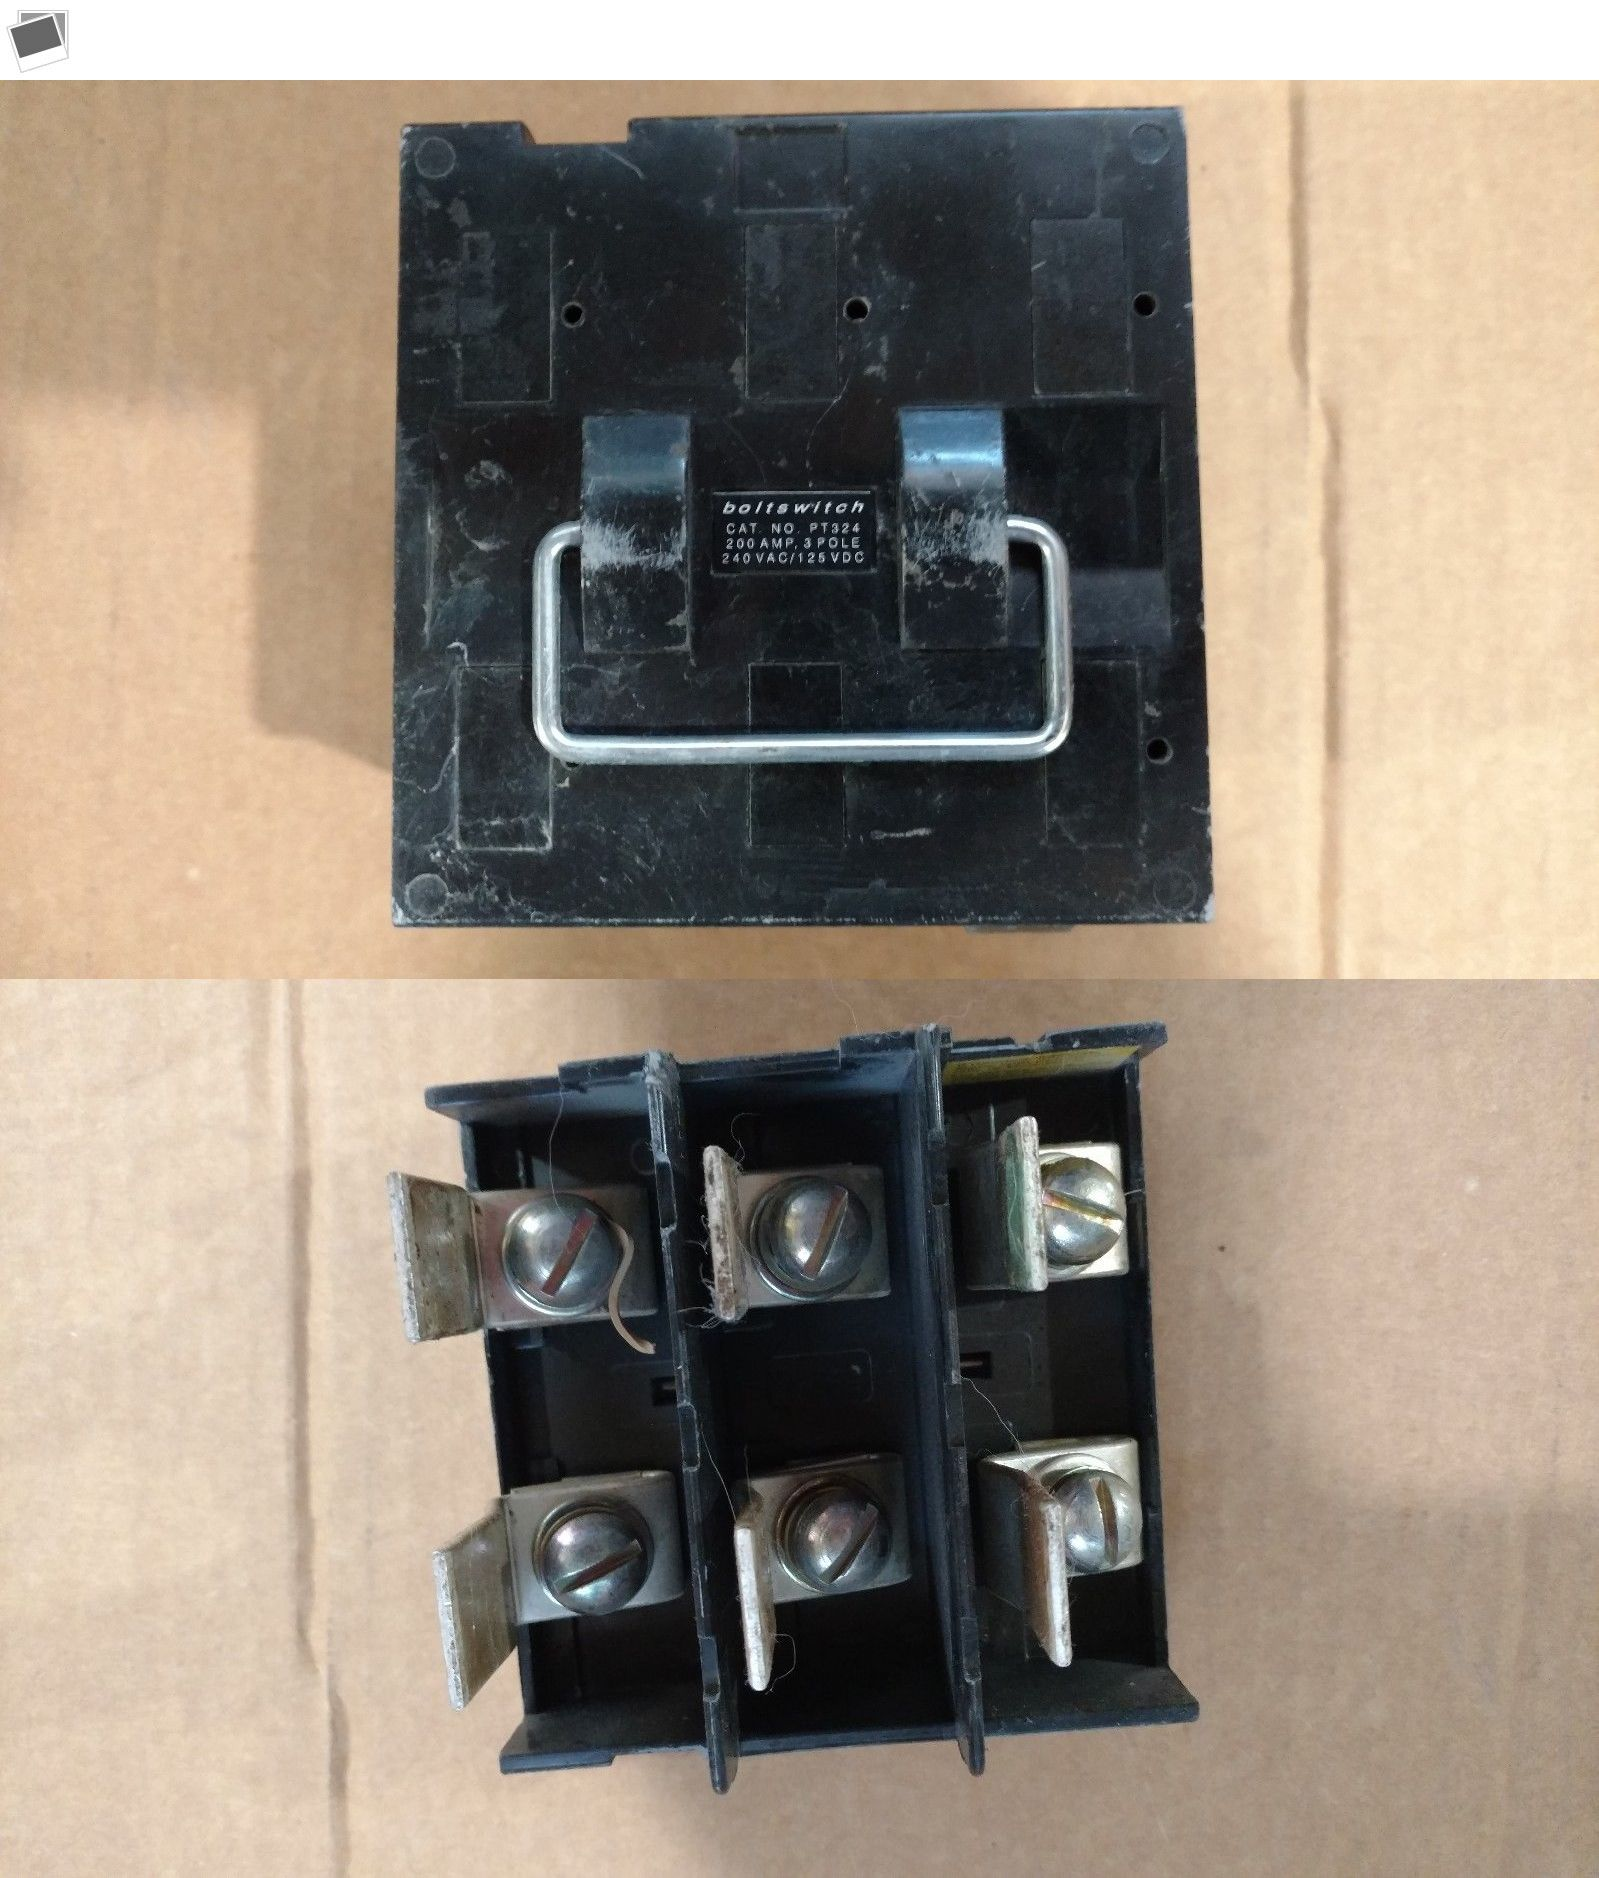 hight resolution of circuit breakers and fuse boxes 20596 boltswitch pt324 fusablecircuit breakers and fuse boxes 20596 boltswitch pt324